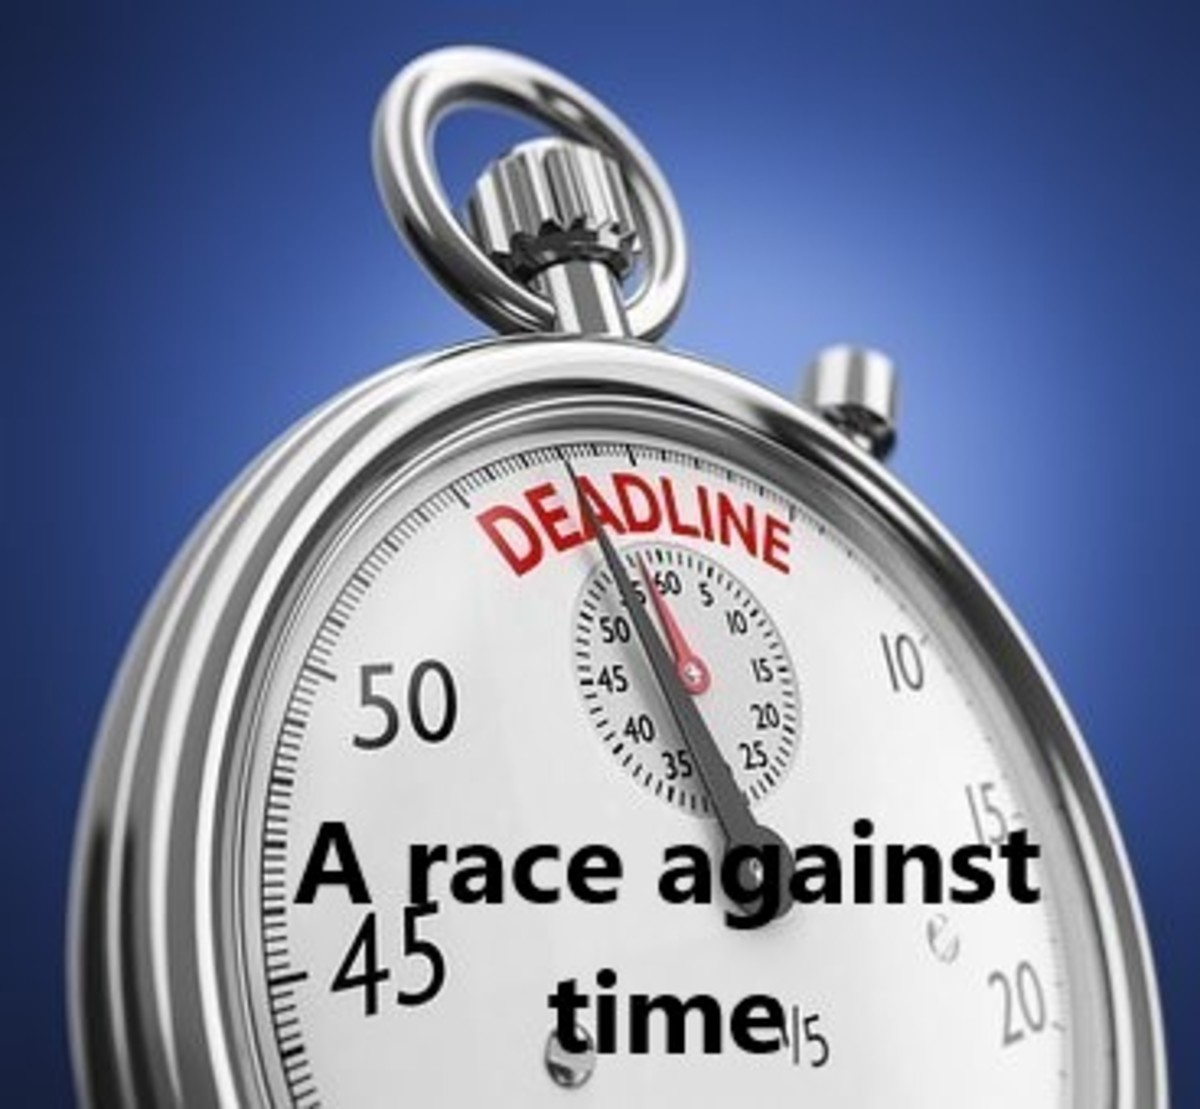 There are always times when we face a looming deadline.